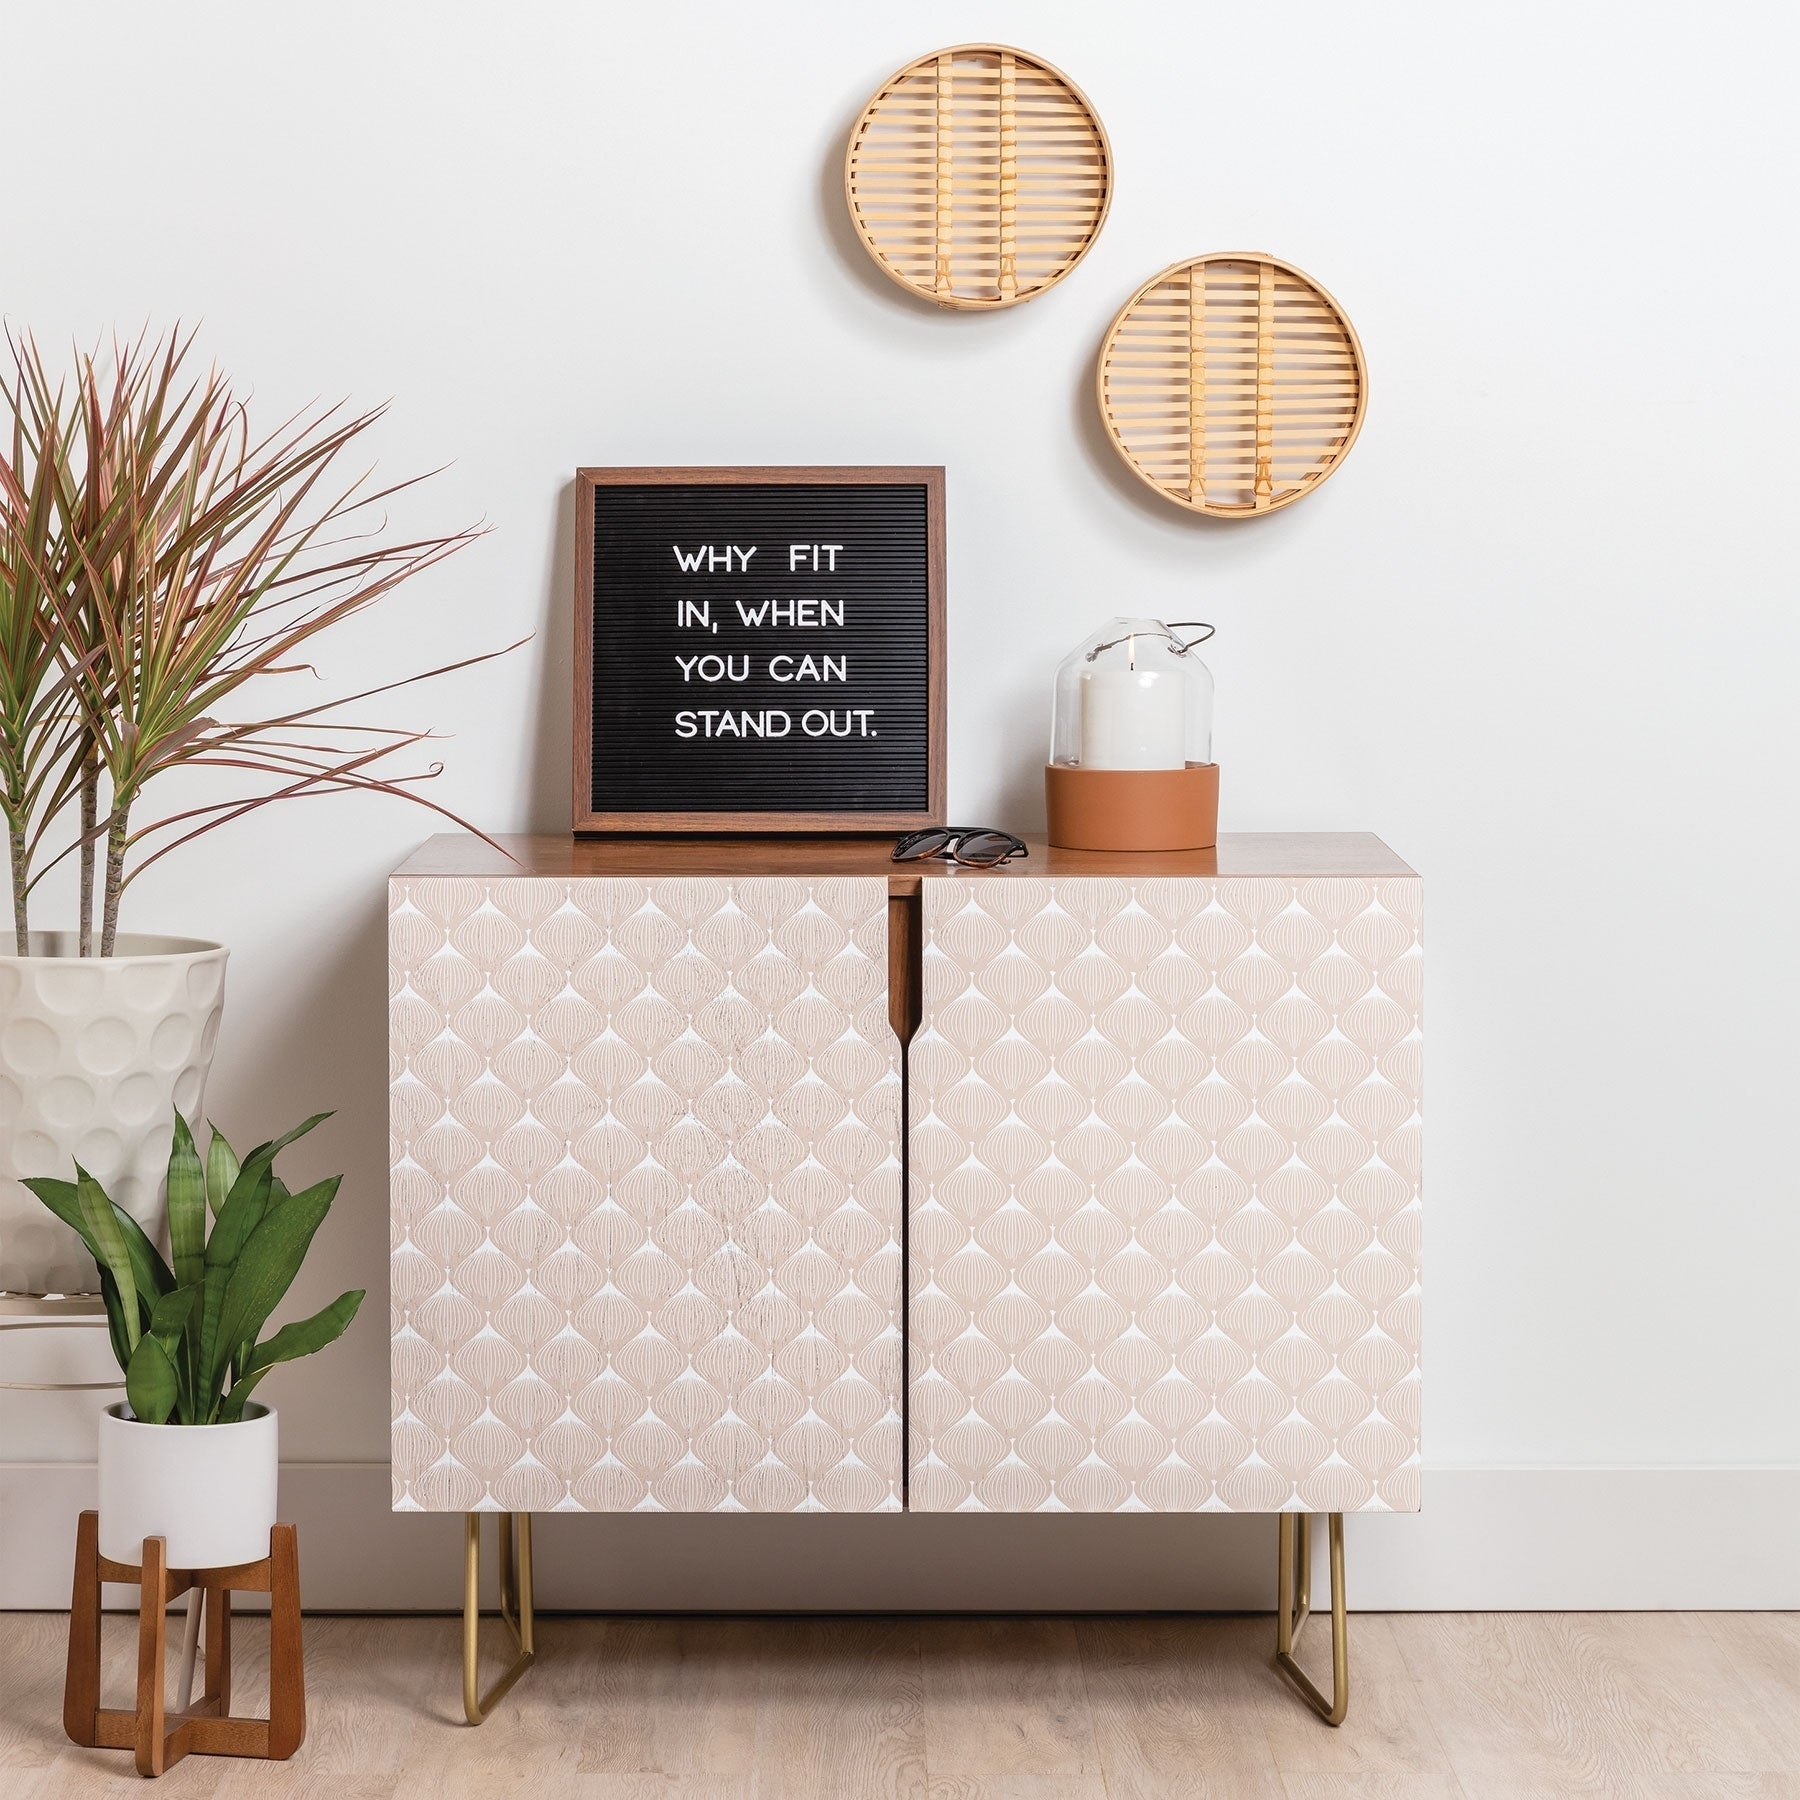 Deny Designs Pale Pink Bulbs Credenza (Birch Or Walnut, 2 Leg Options) Throughout Pale Pink Bulbs Credenzas (Photo 2 of 30)